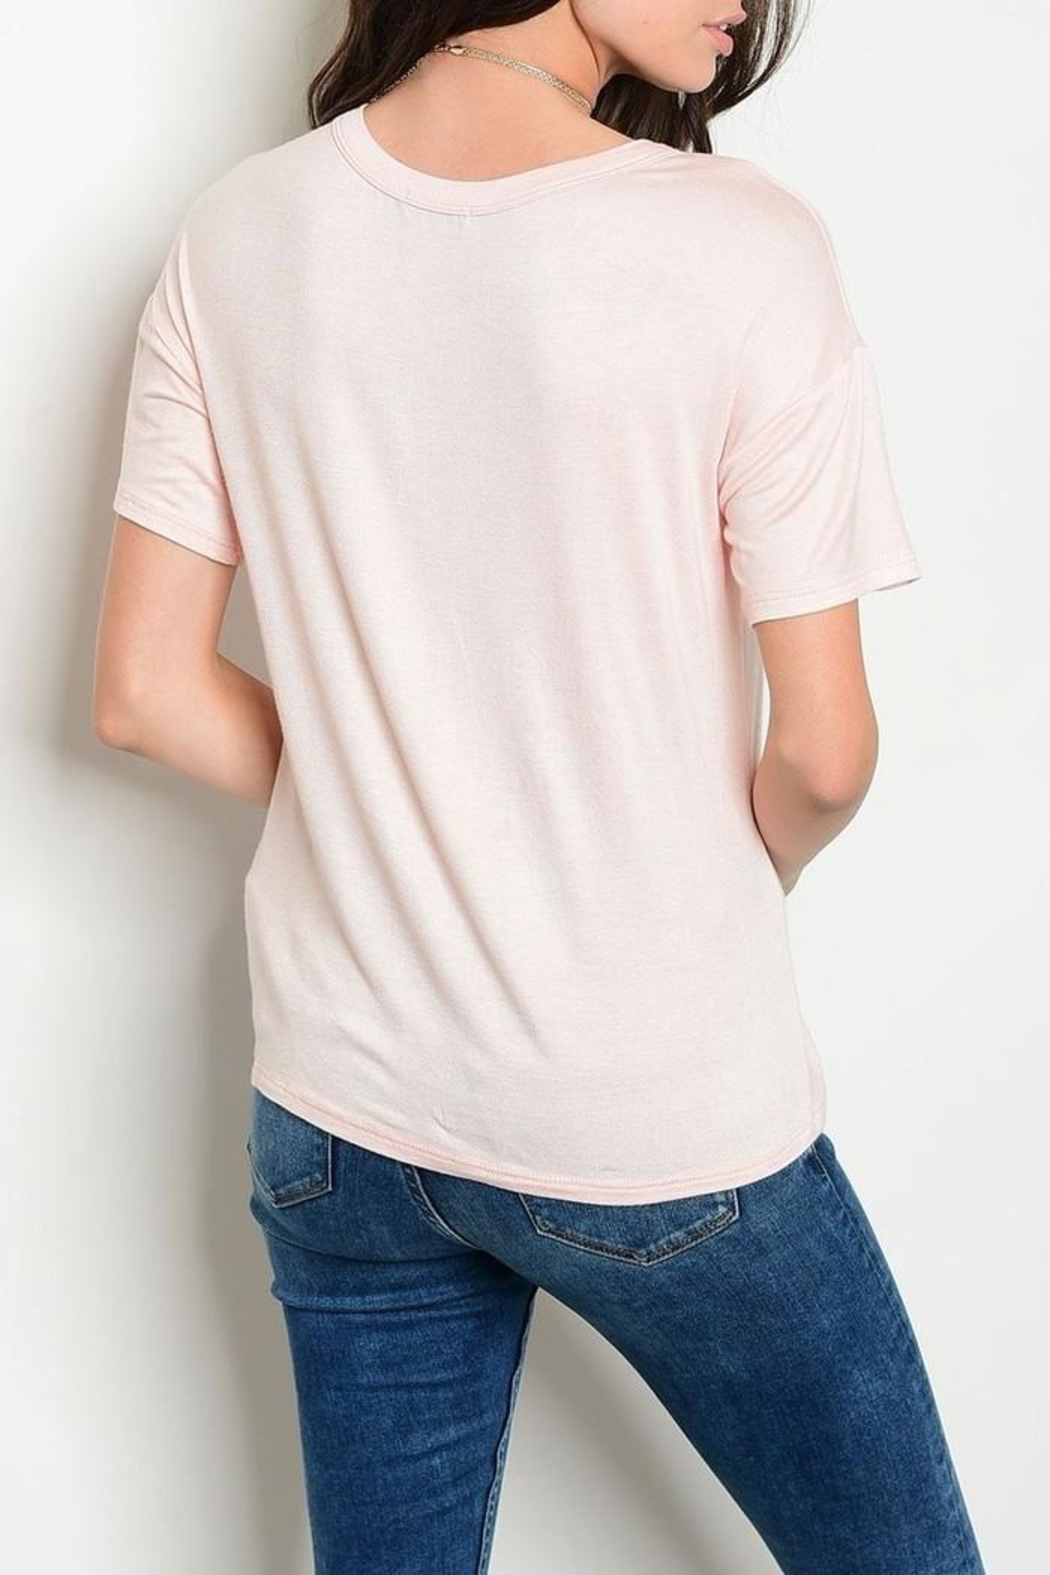 Sweet Claire Blush Bird Tee - Front Full Image